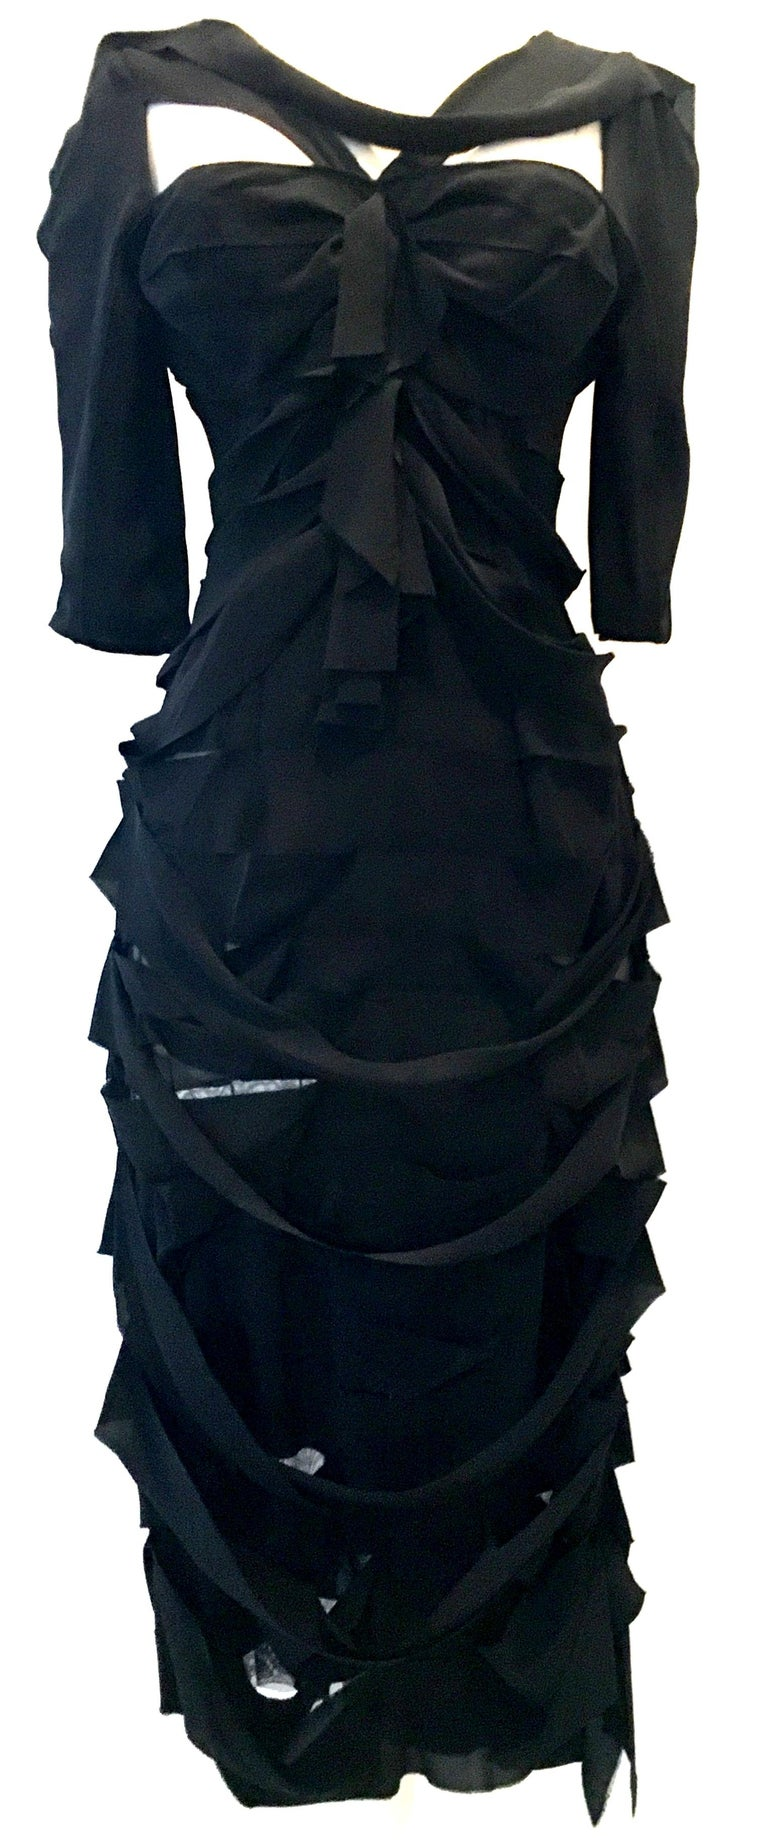 21st Century & New French Silk Black Dress By, Nina Ricci Paris - Size 6. This finely crafted architectural creation of a